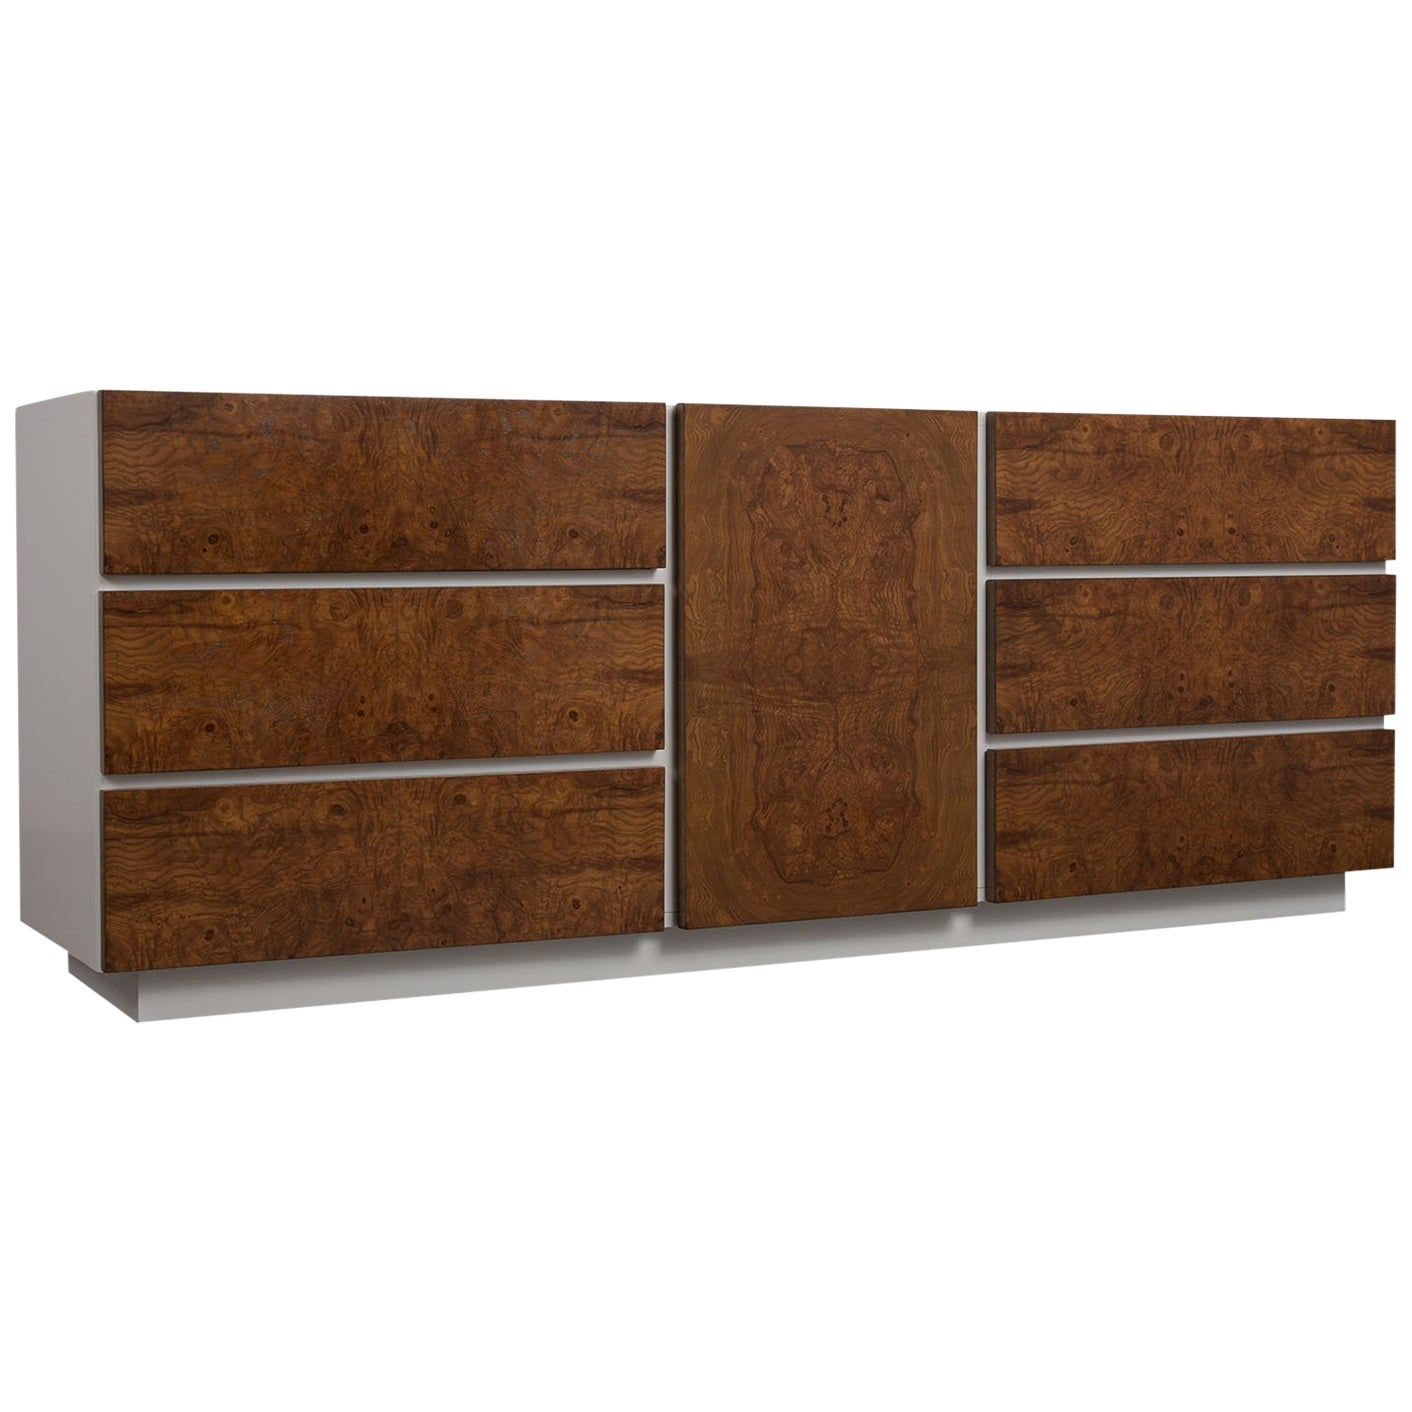 1970's Mid Century Modern Lacquered Credenza